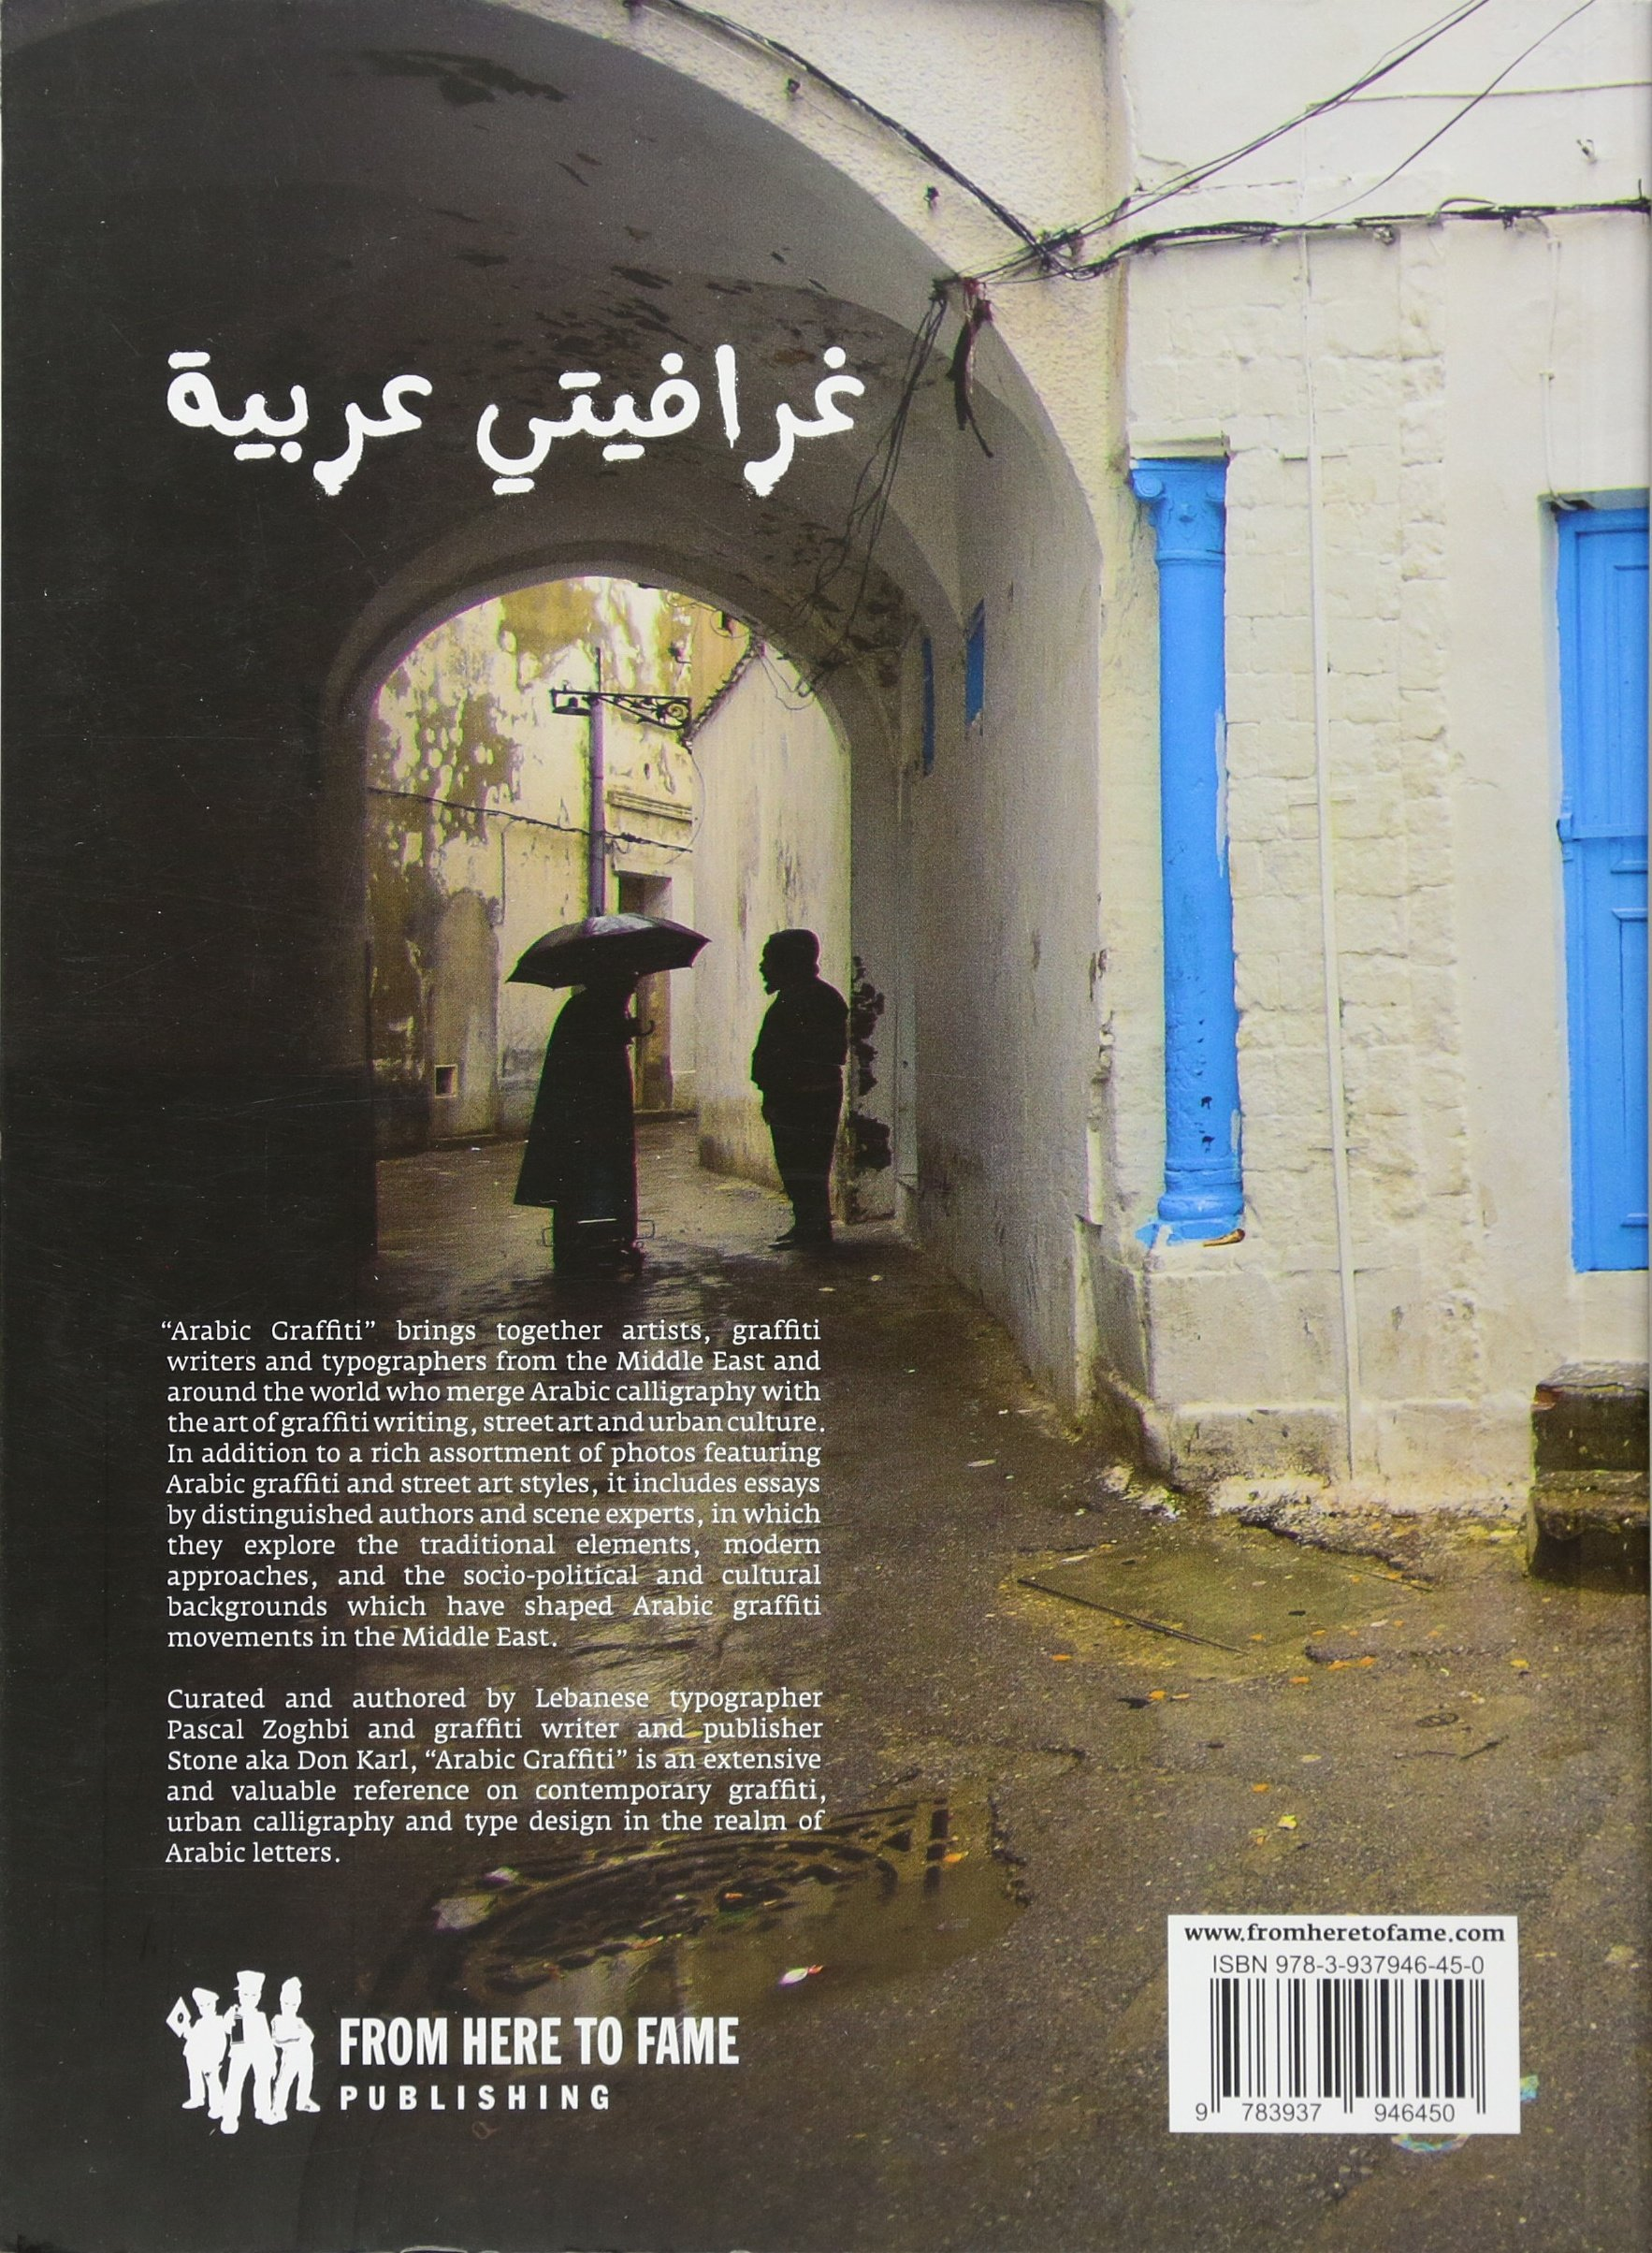 Arabic Graffiti: Paperback Edition by From Here to Fame